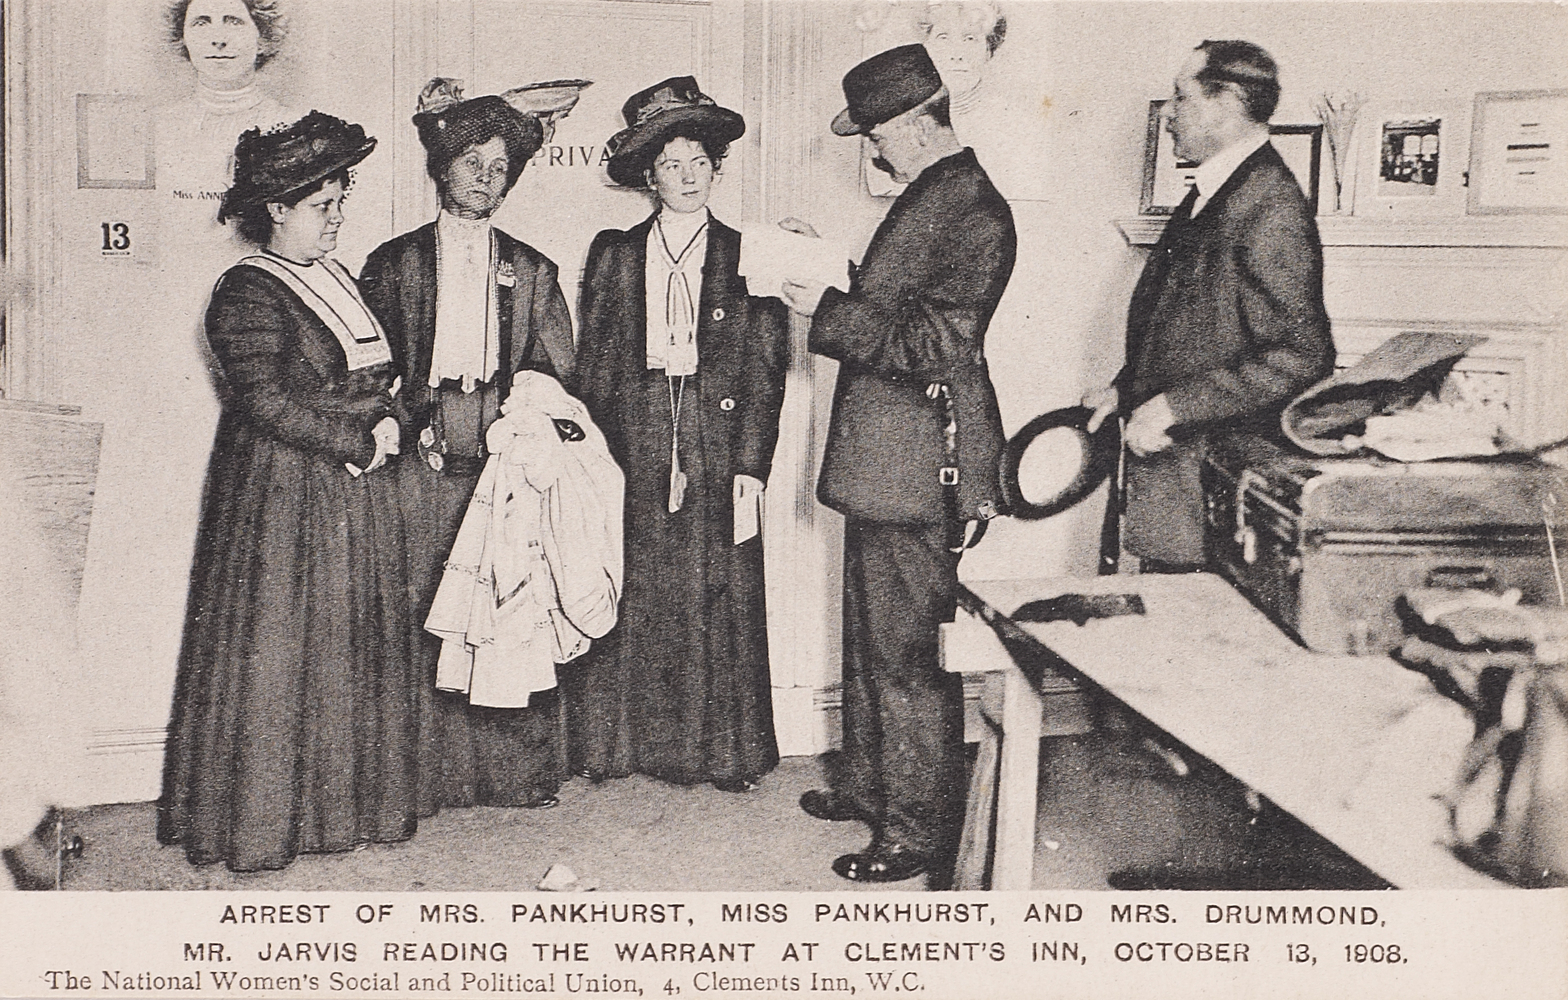 Postcard, Arrest of Mrs Pankhurst, Miss Pankhurst and Mrs Drummond, 13 October 1908